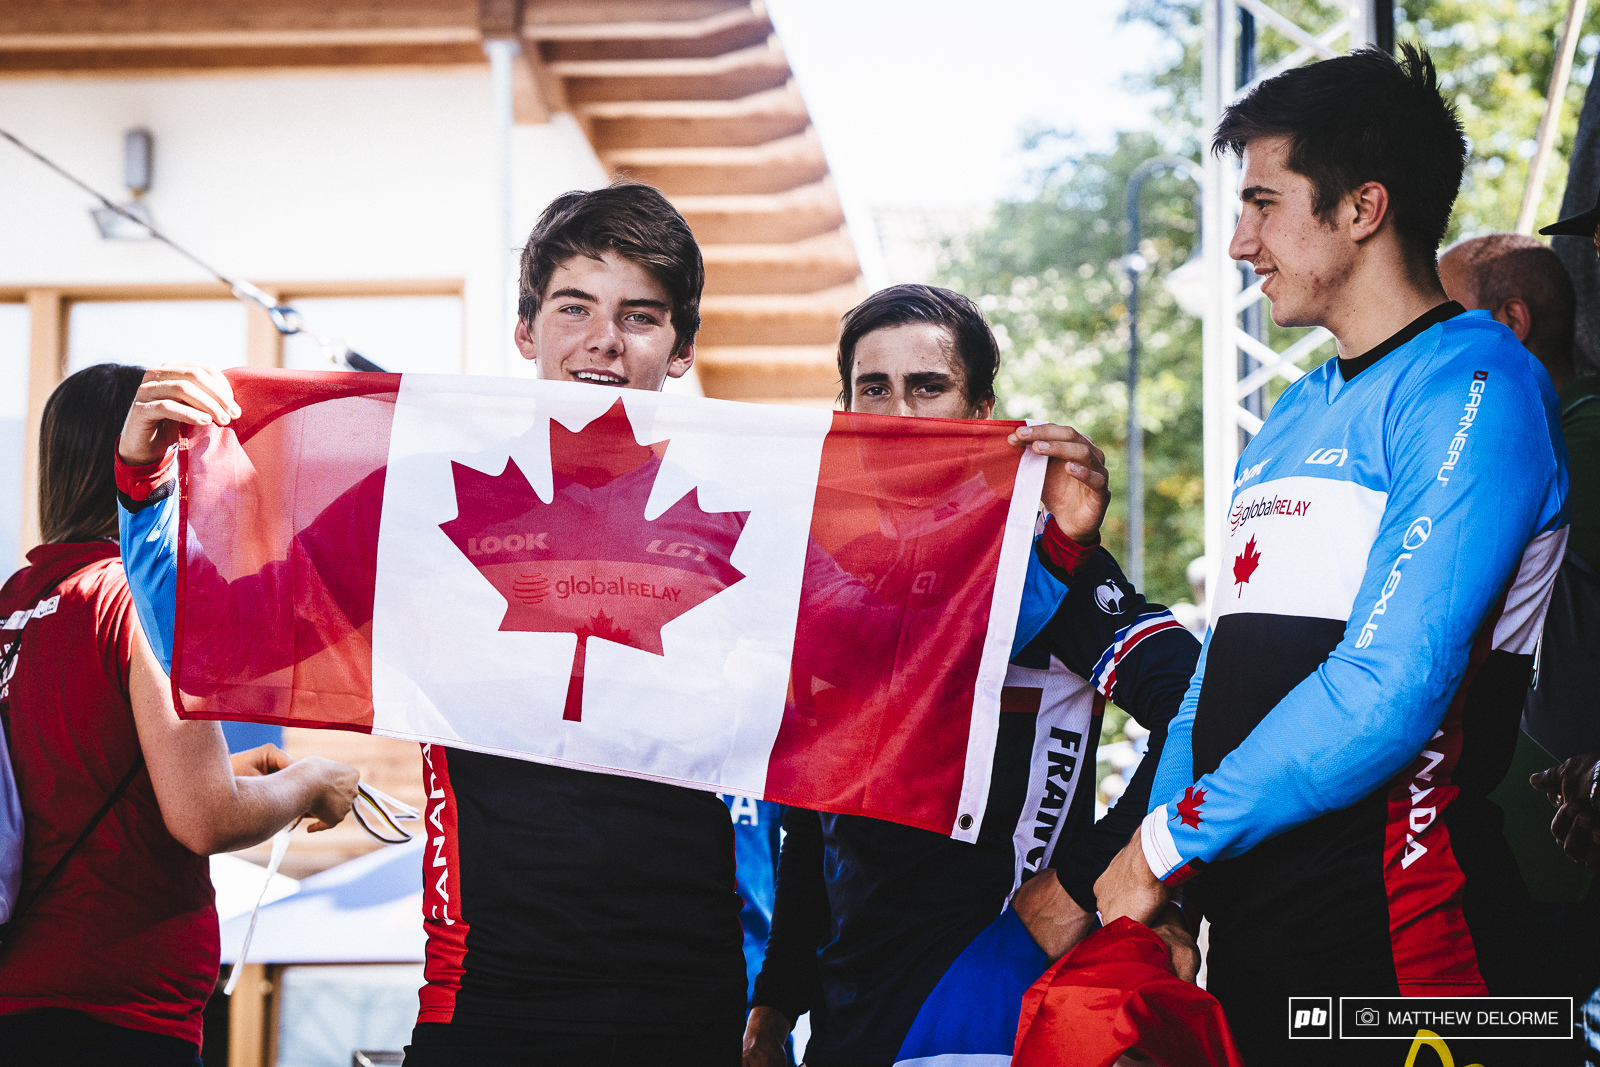 Two Canadians and a Frenchman. Iles Manson and Vige post race.